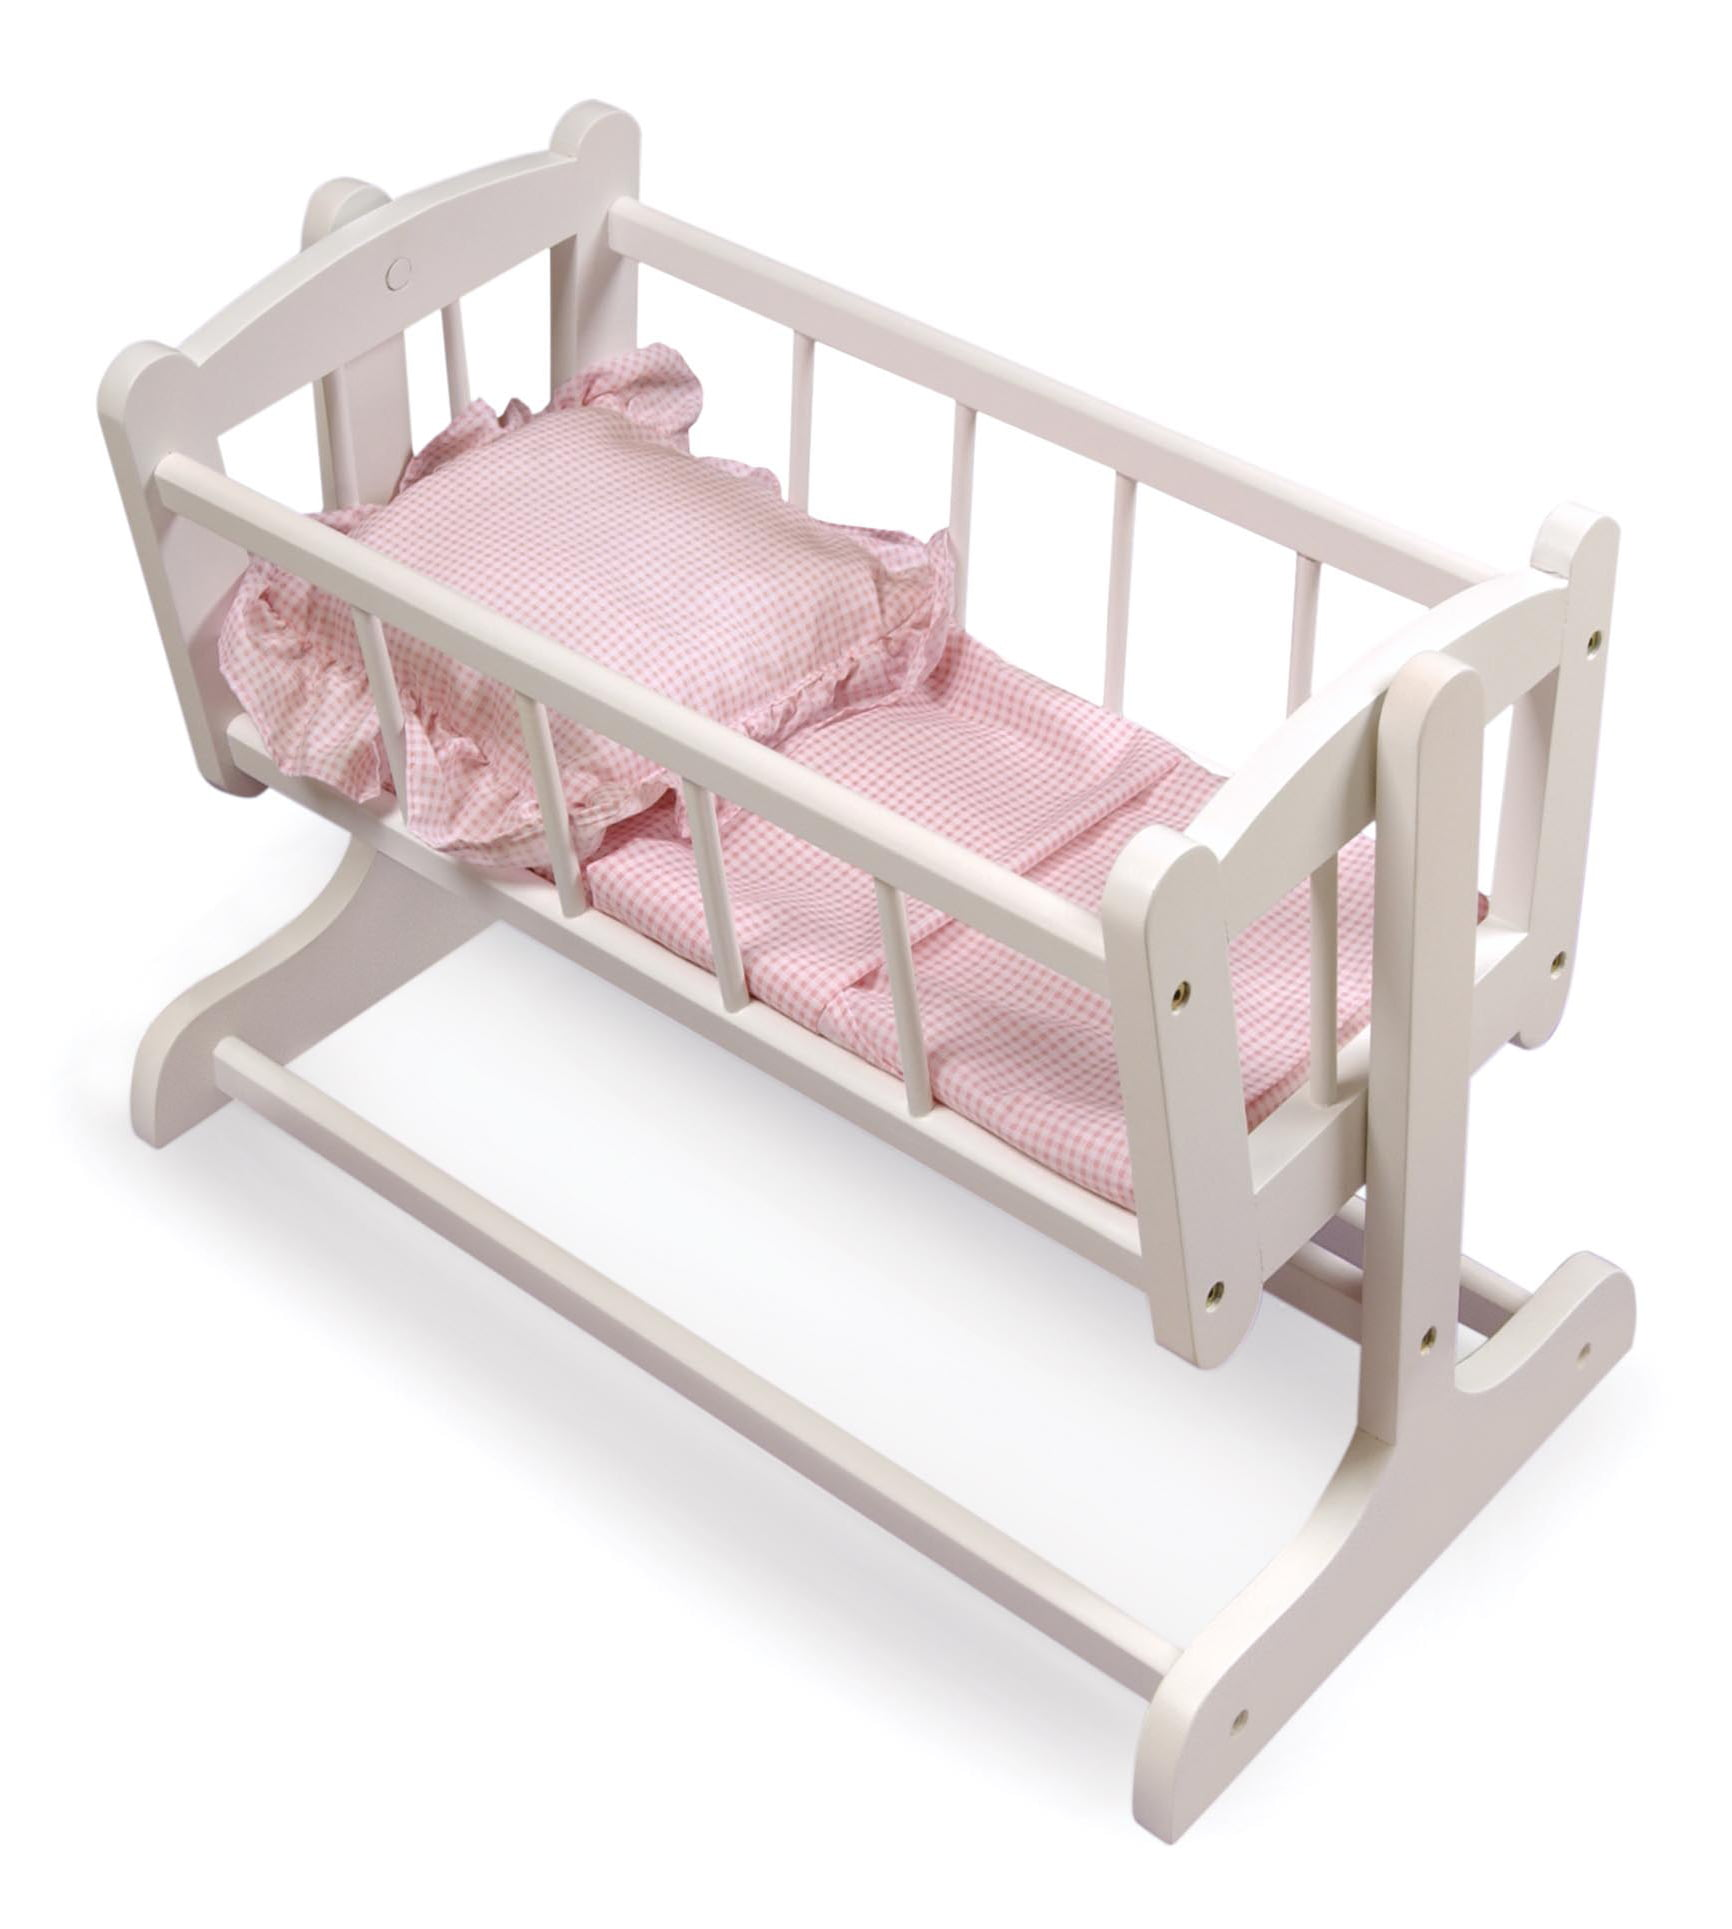 Badger Basket Heirloom Style Doll Cradle with Bedding White Pink Fits American Girl, My... by Badger Basket